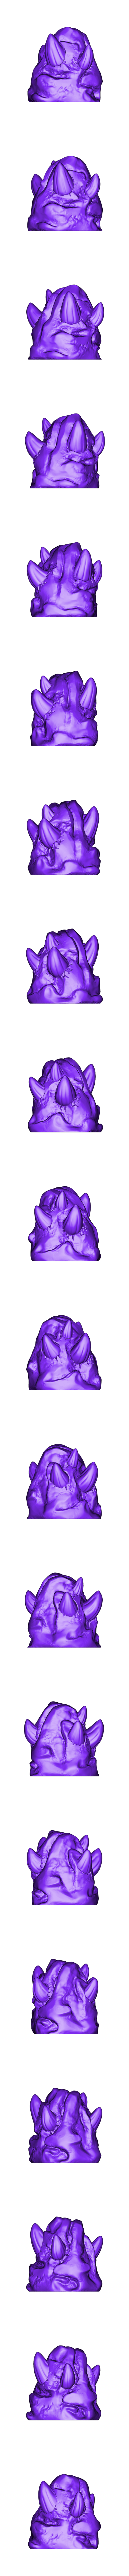 Chaos_stone1.stl Download free STL file Chaos stones • Template to 3D print, duncanshadow